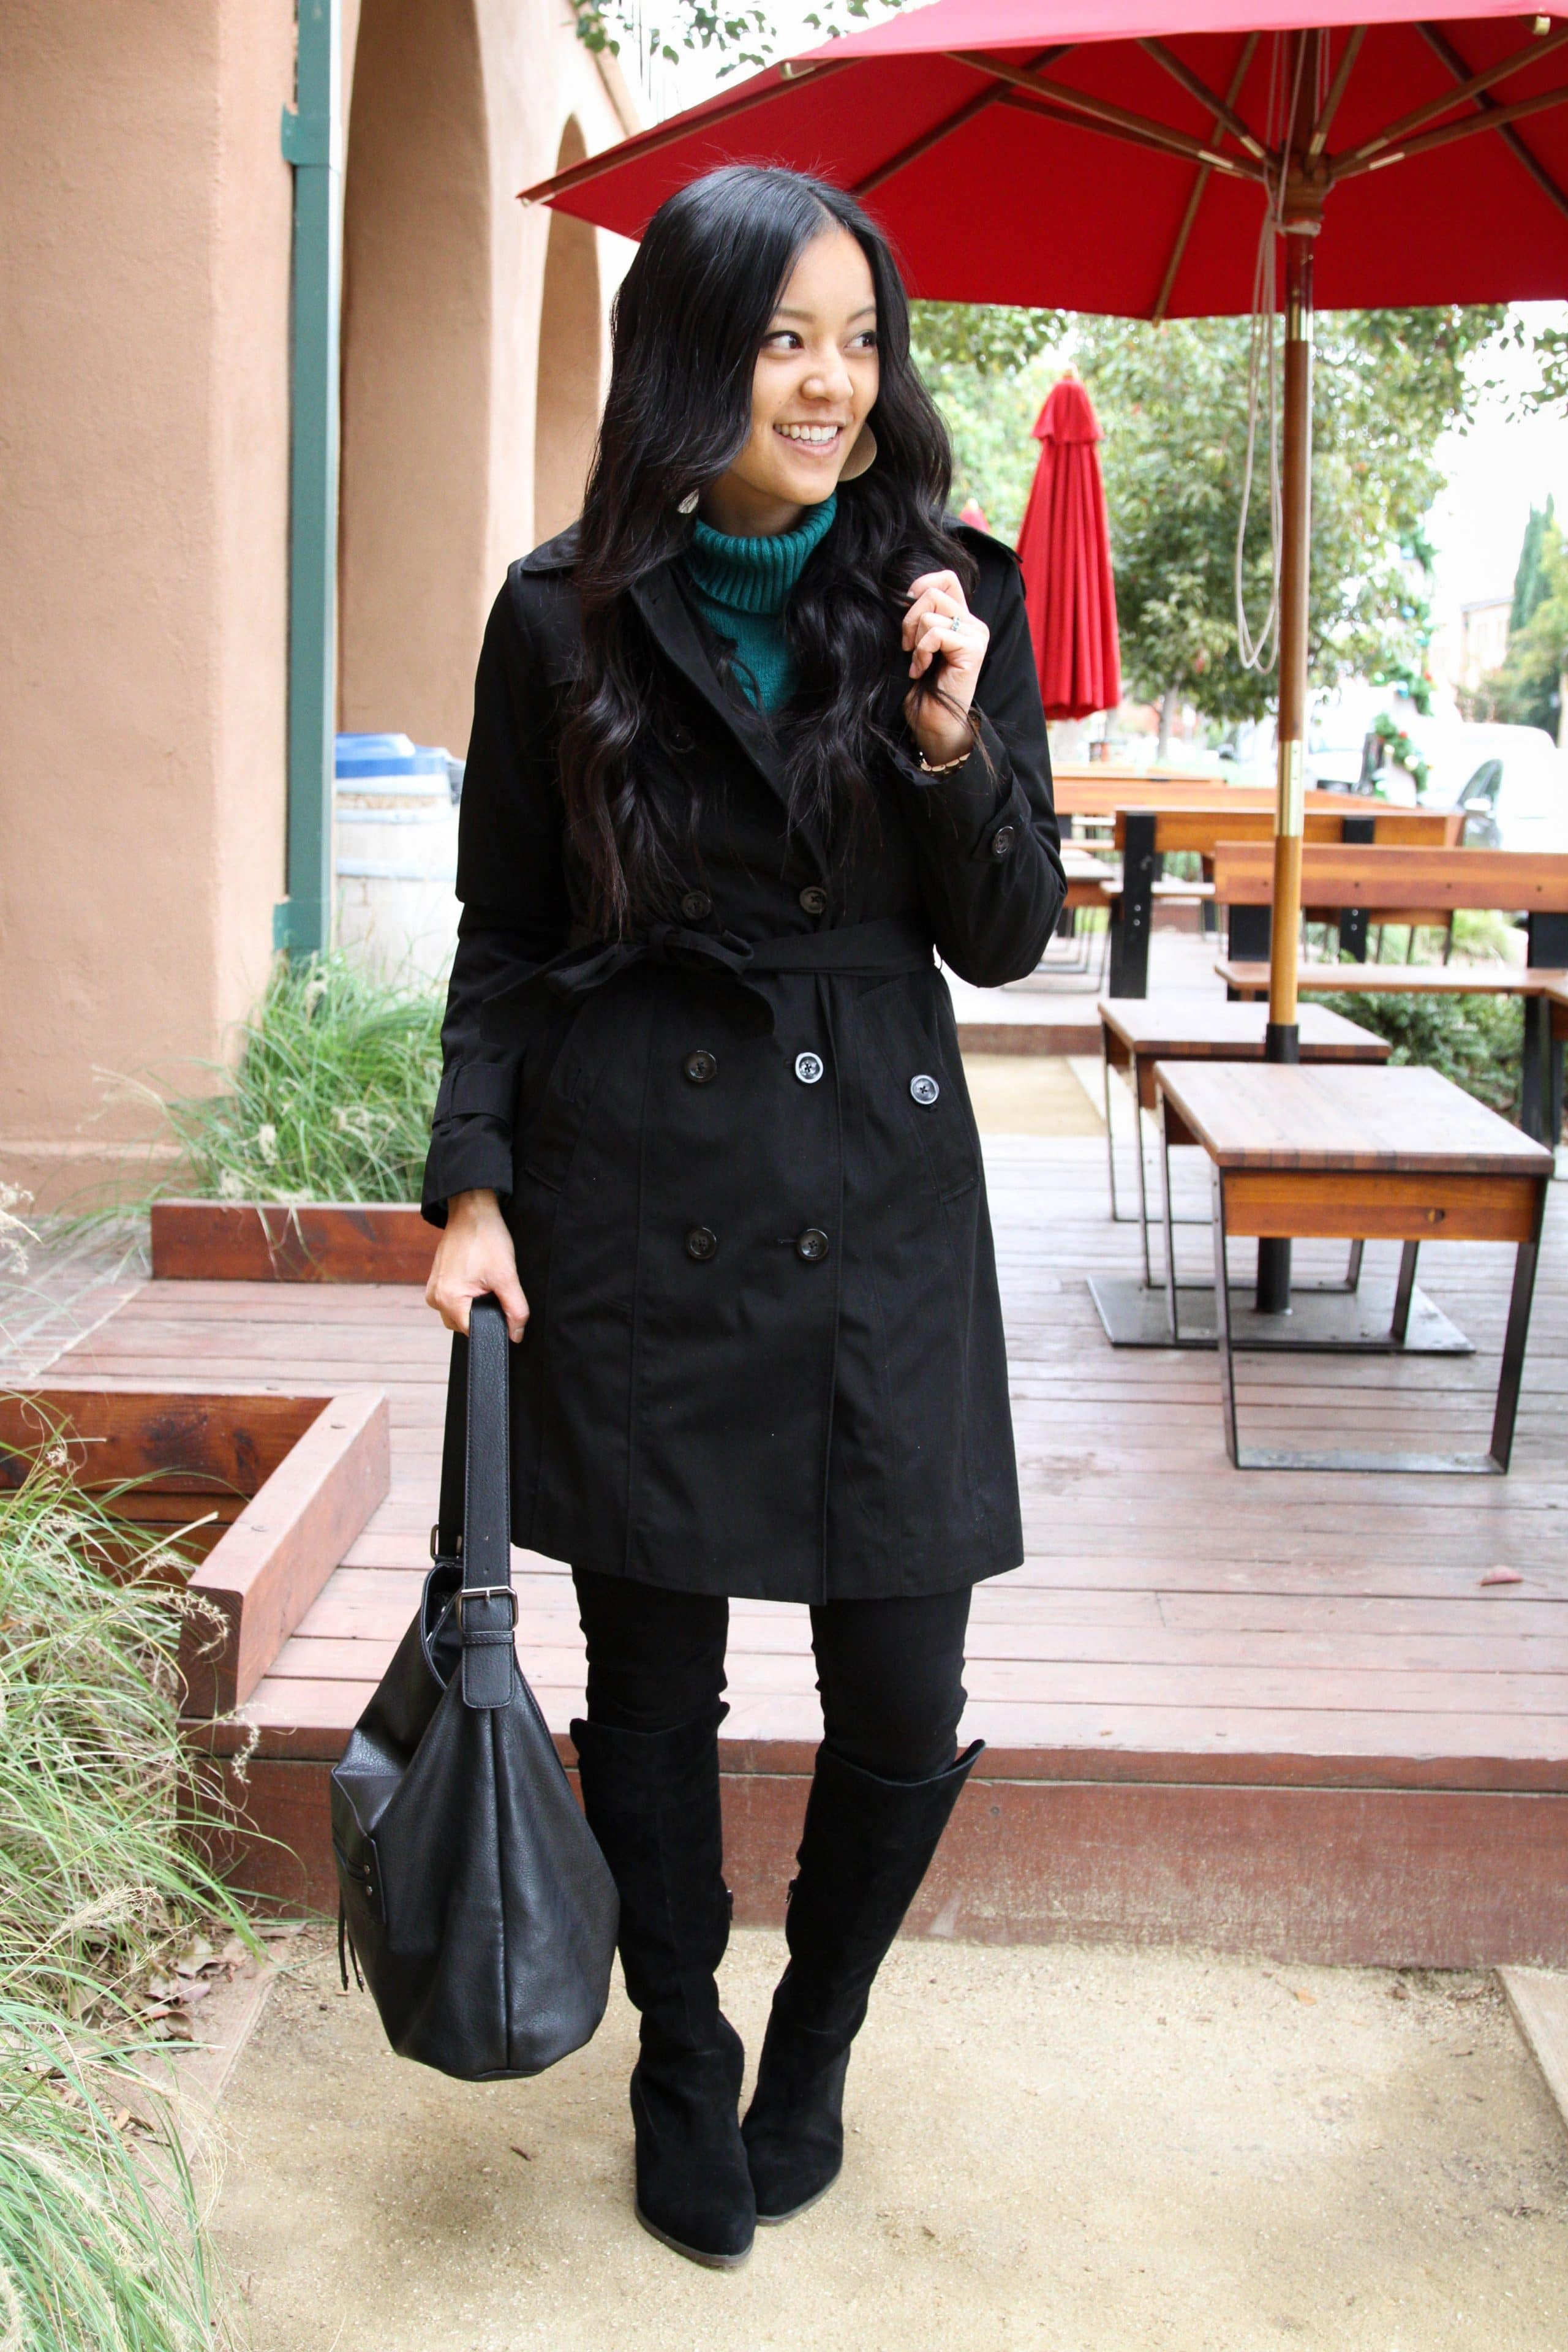 Black Trench + Black Jeans + Black Bag